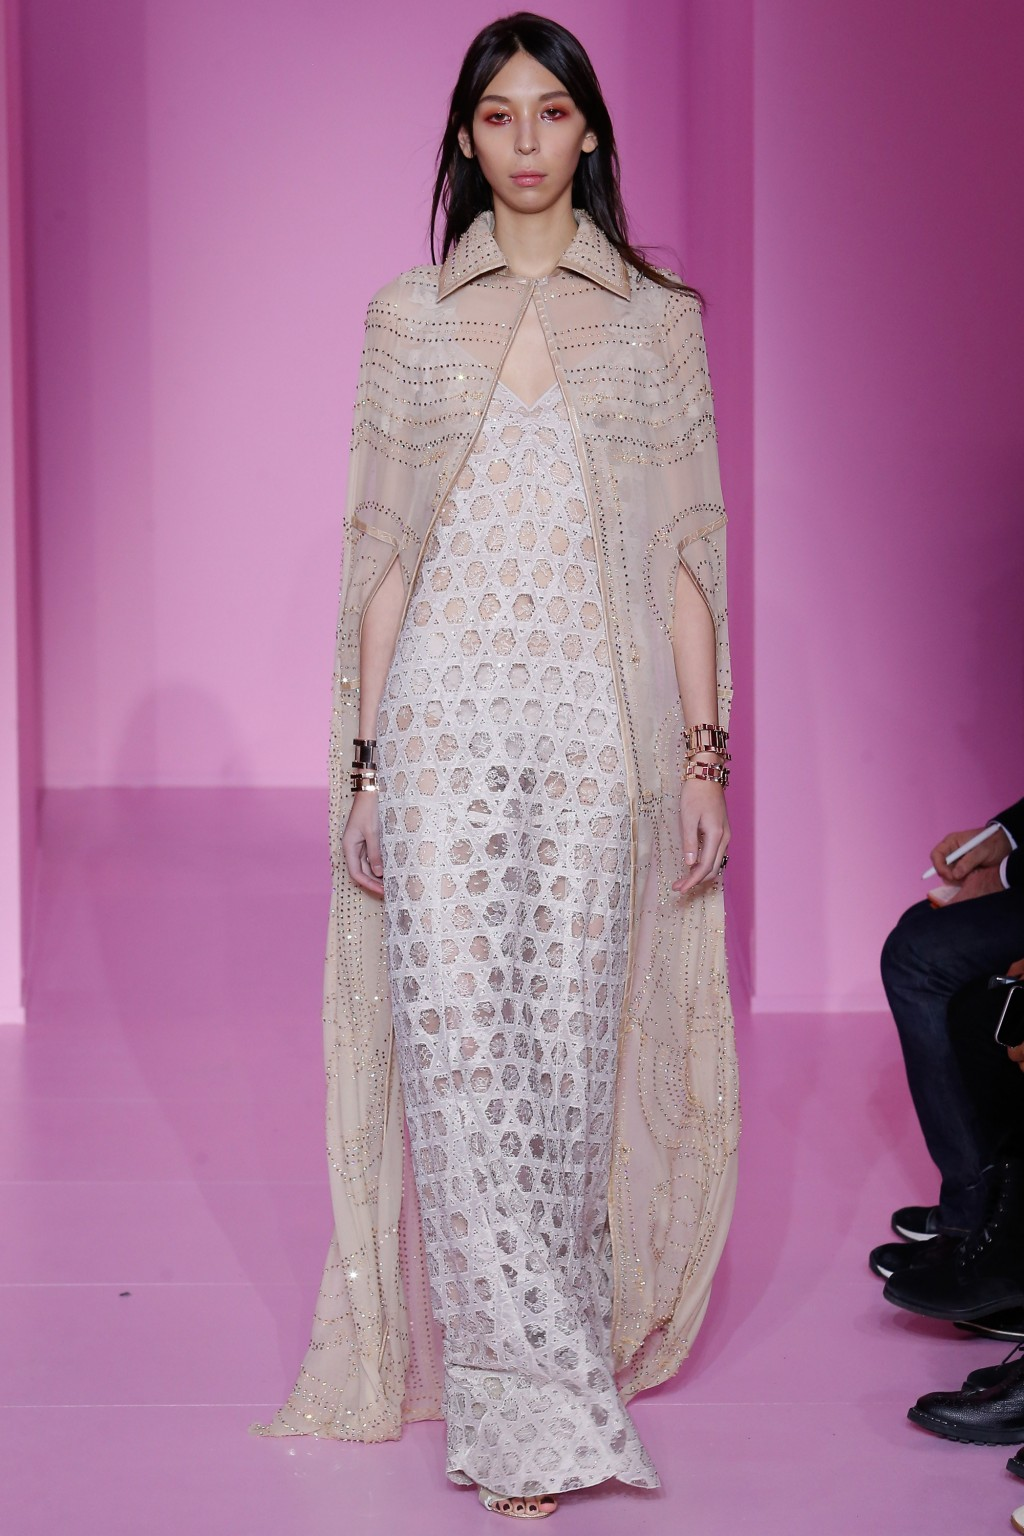 givenchy-spring-2016-haute-couture-rooney-mara-bafta-1024x1536